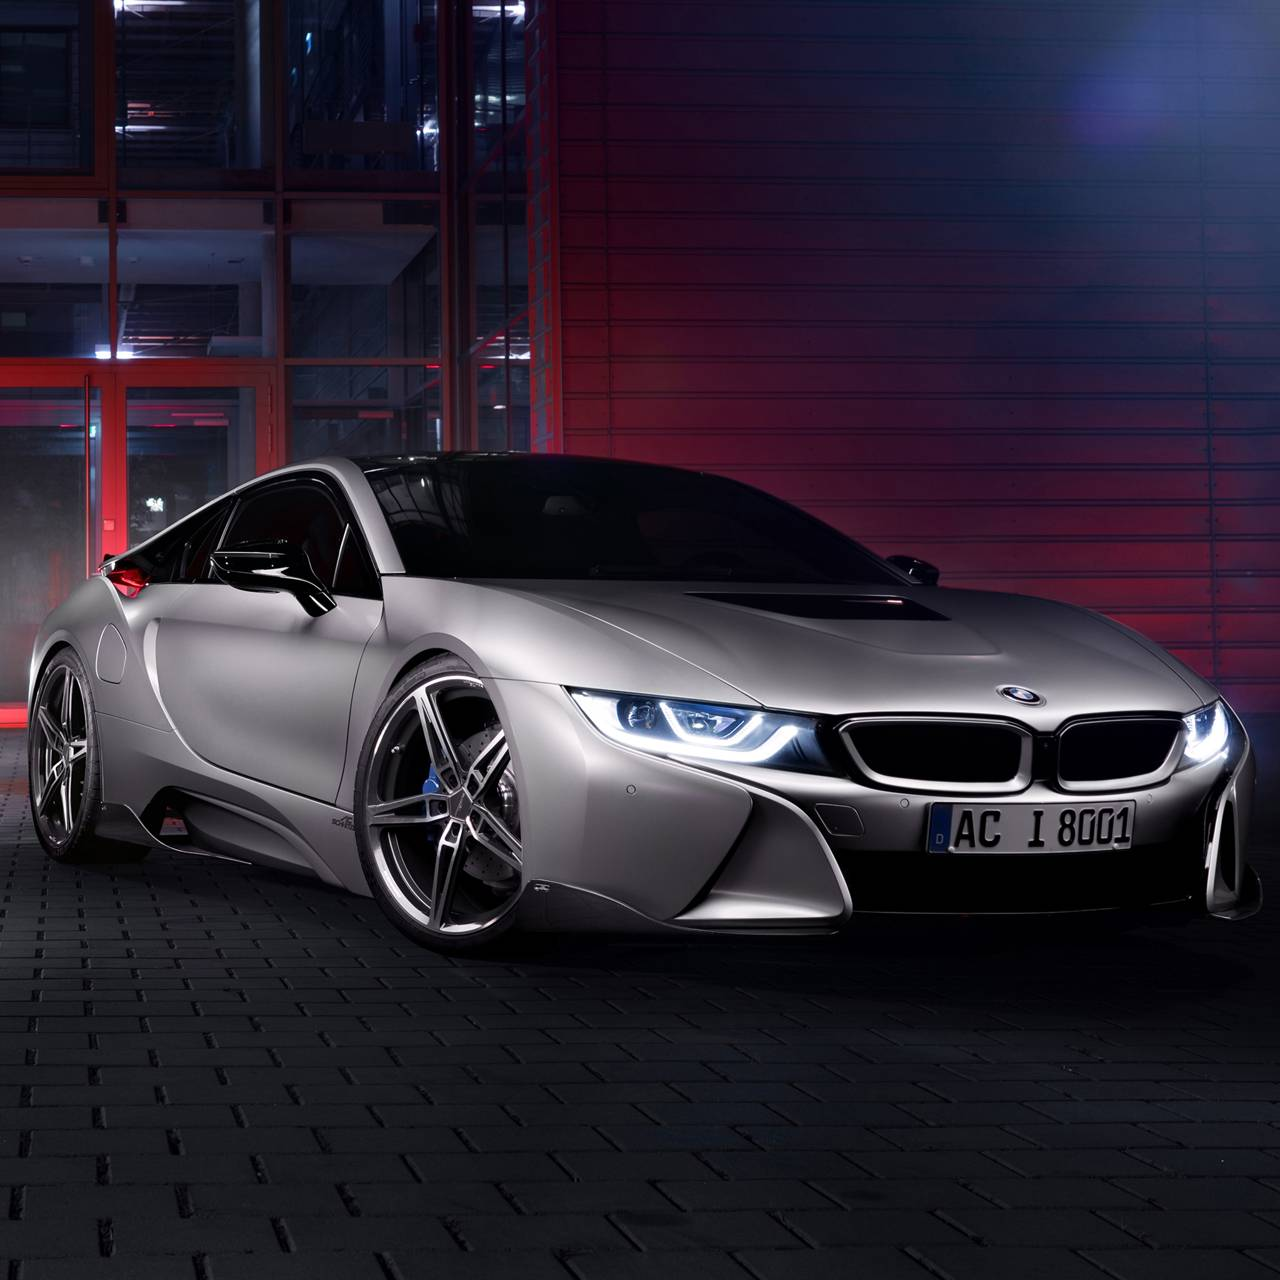 Modified Bmw I8 Wallpaper By At1988 24 Free On Zedge